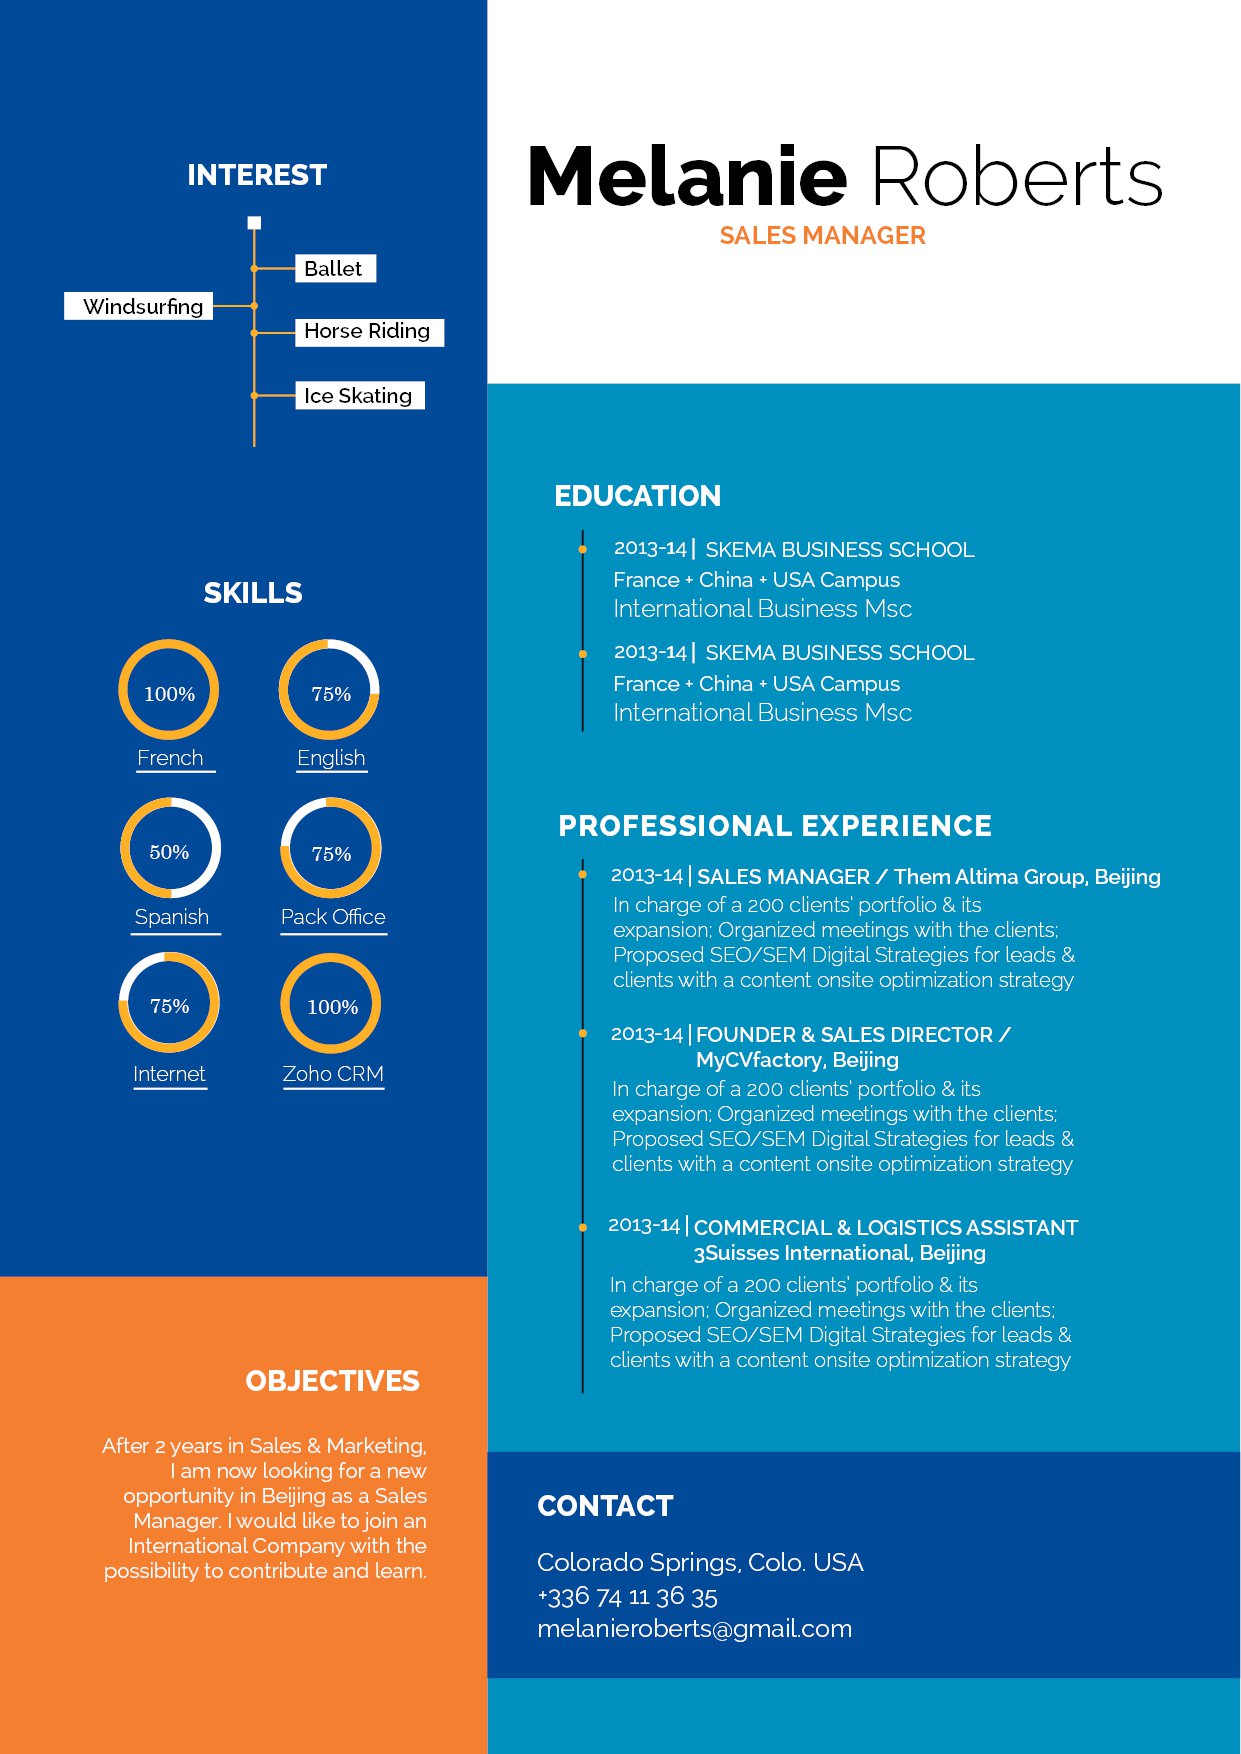 This modern CV comes with a great format made for professionals!